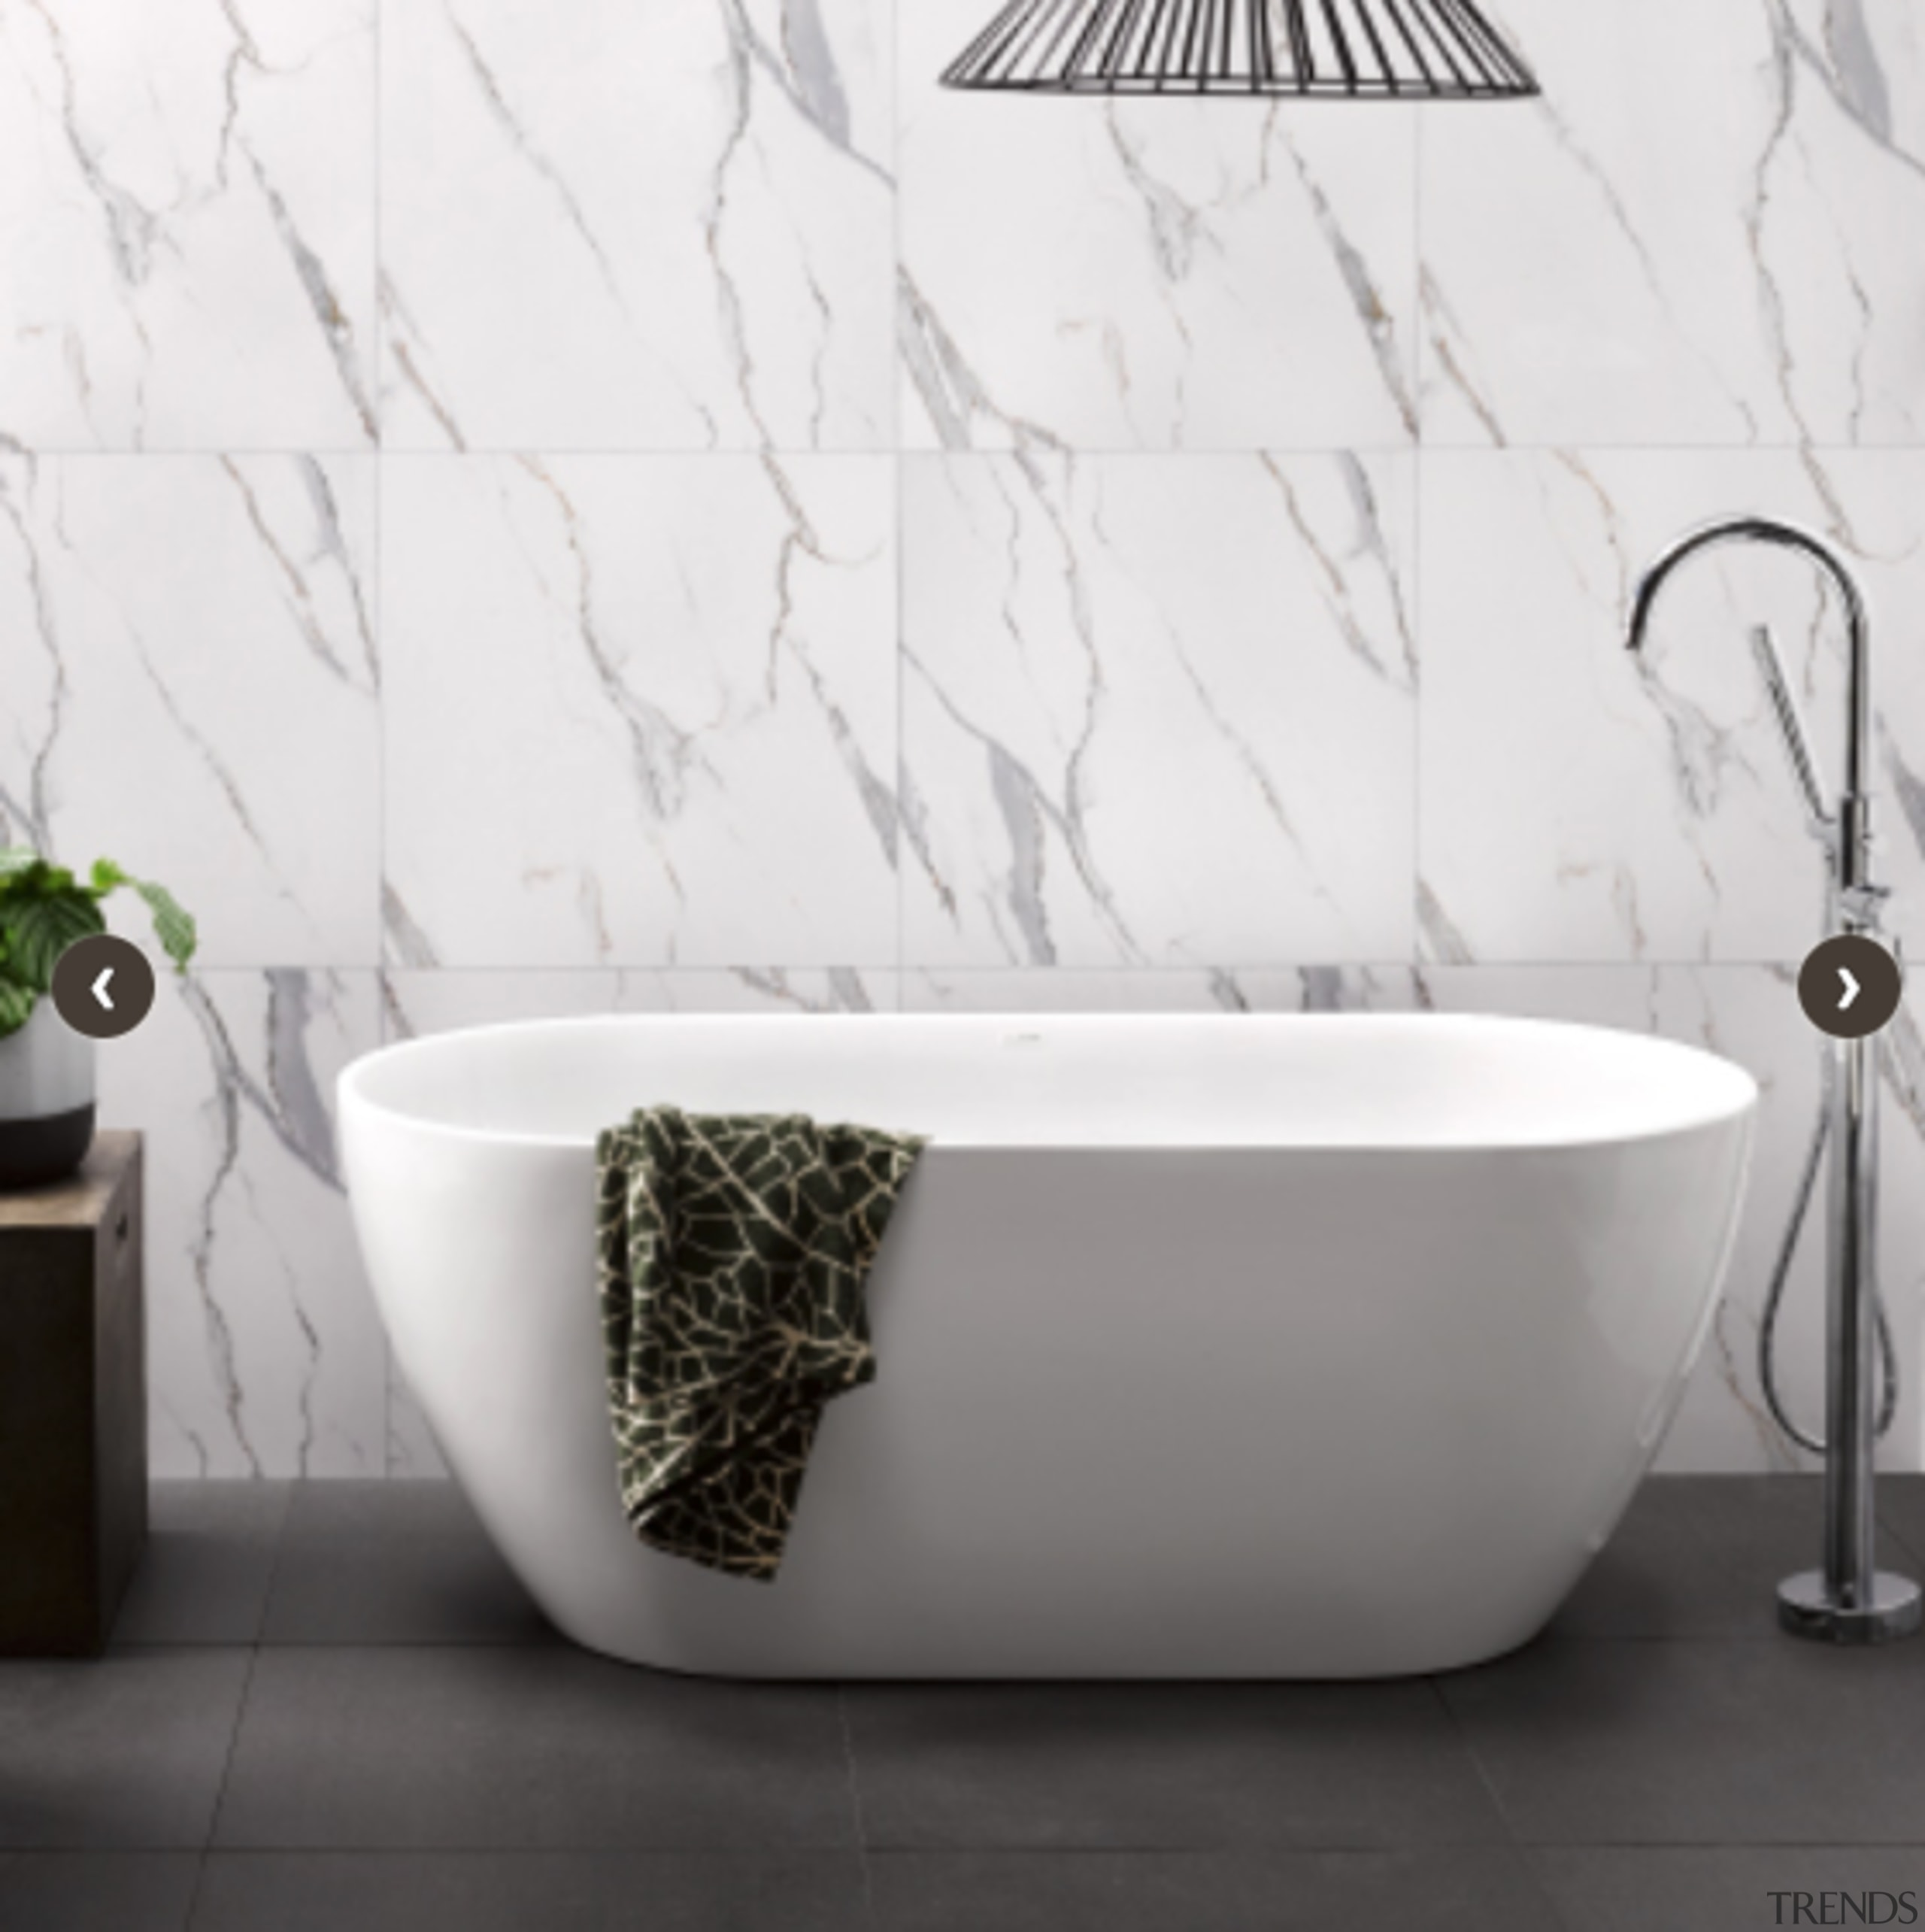 Freestanding bath Cassini http://athena.co.nz/products/cassini-bath/ bathroom, bathroom sink, bathtub, ceramic, plumbing fixture, product, tap, white